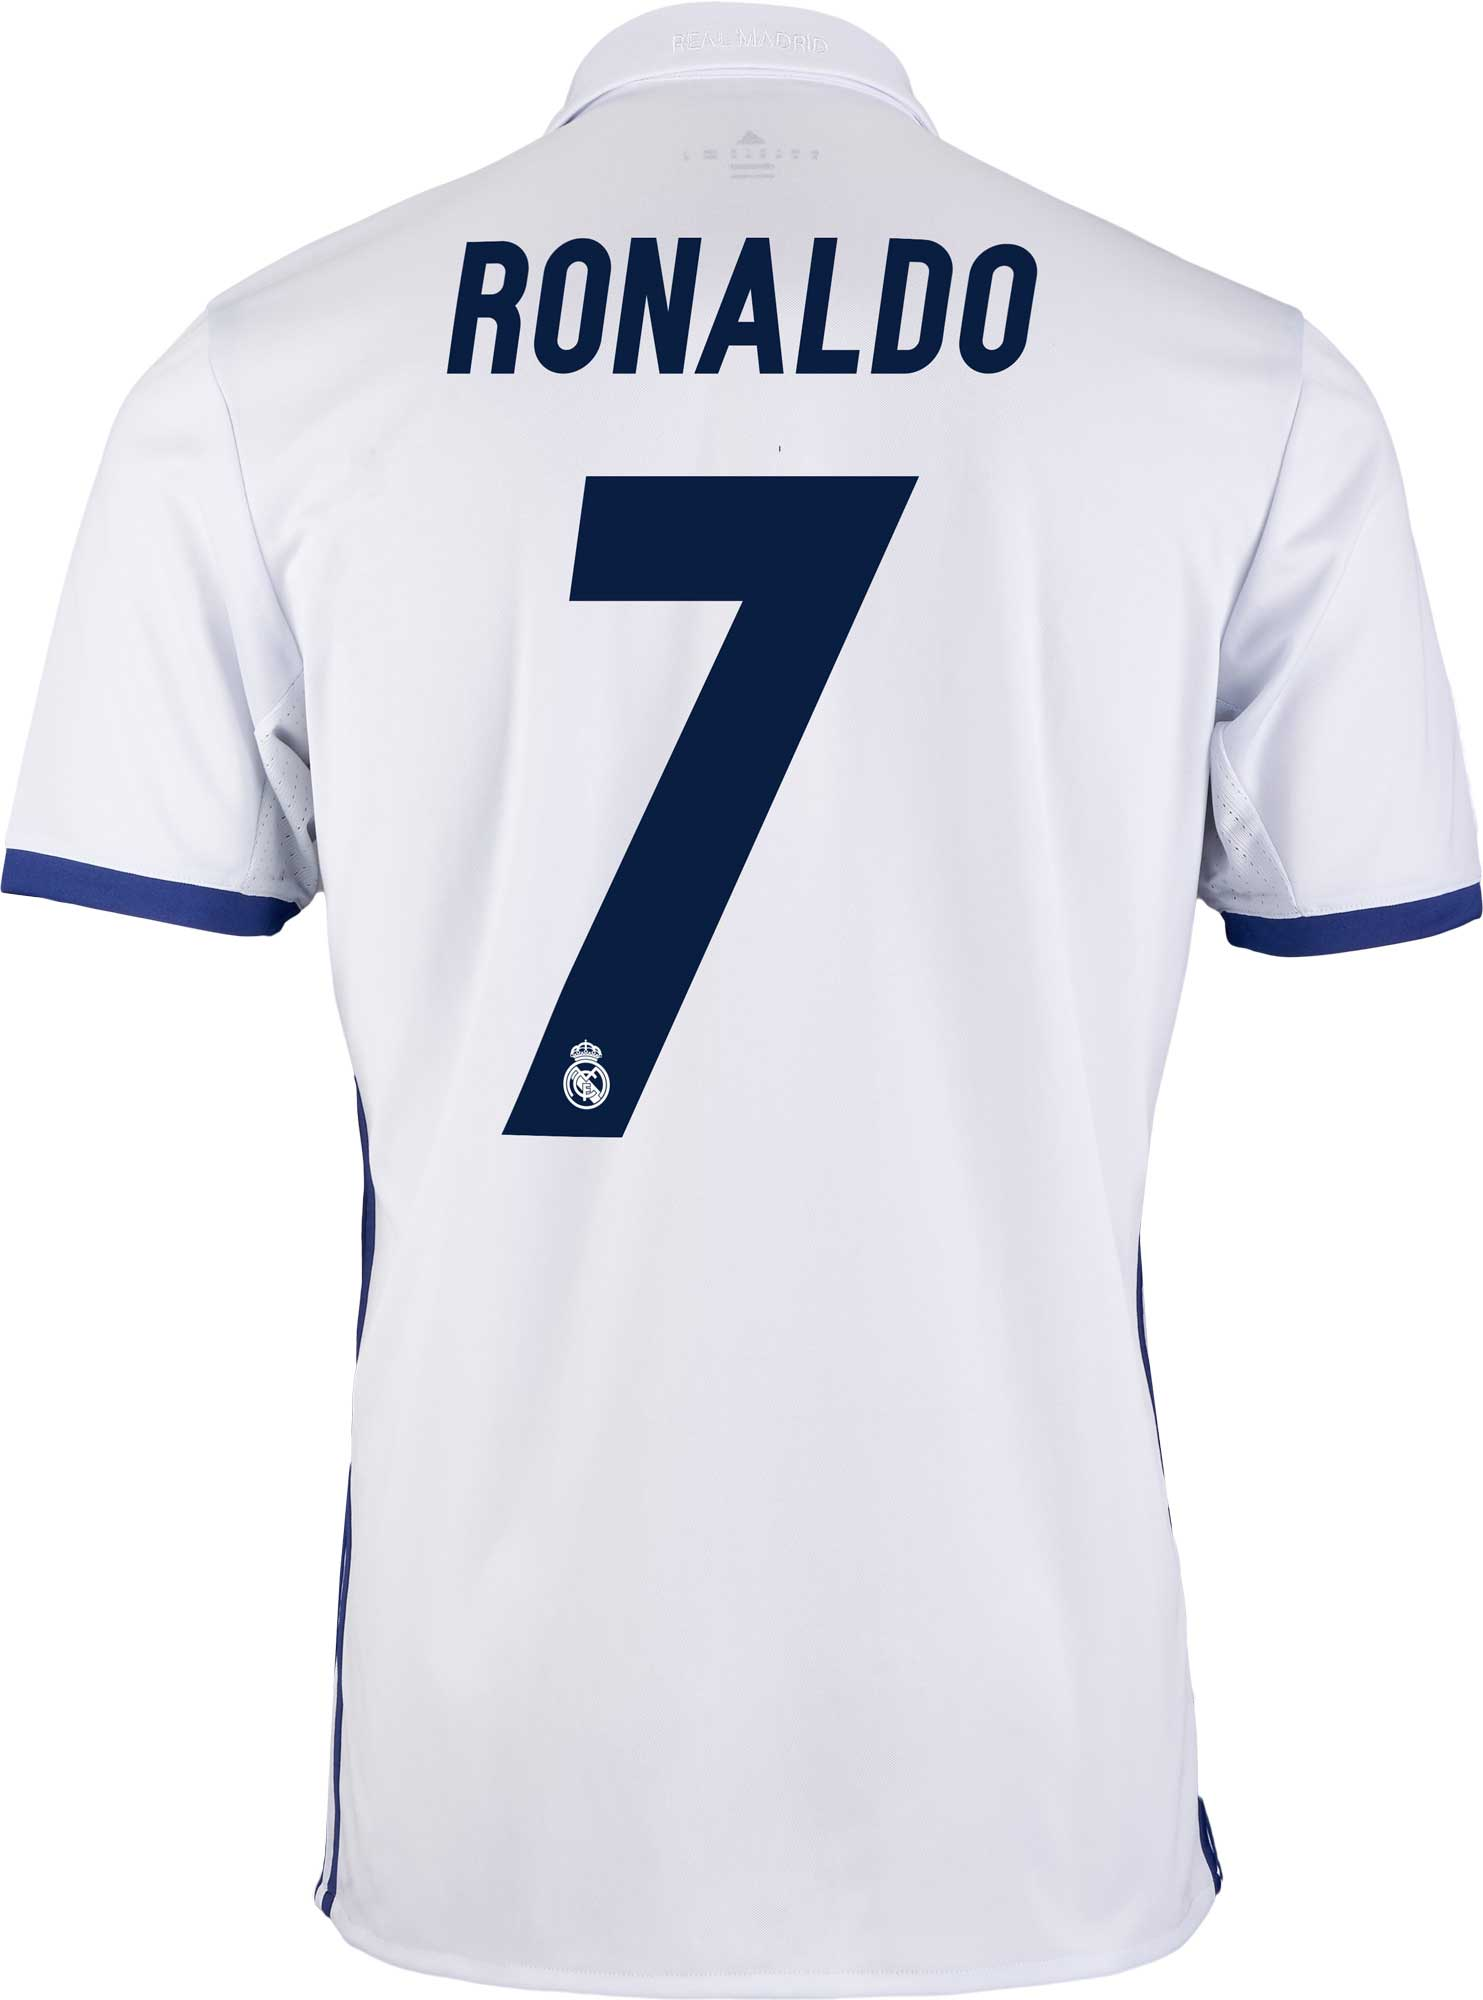 be4f29a59 adidas Kids Ronaldo Real Madrid Jersey - 2016 Real Madrid Jerseys